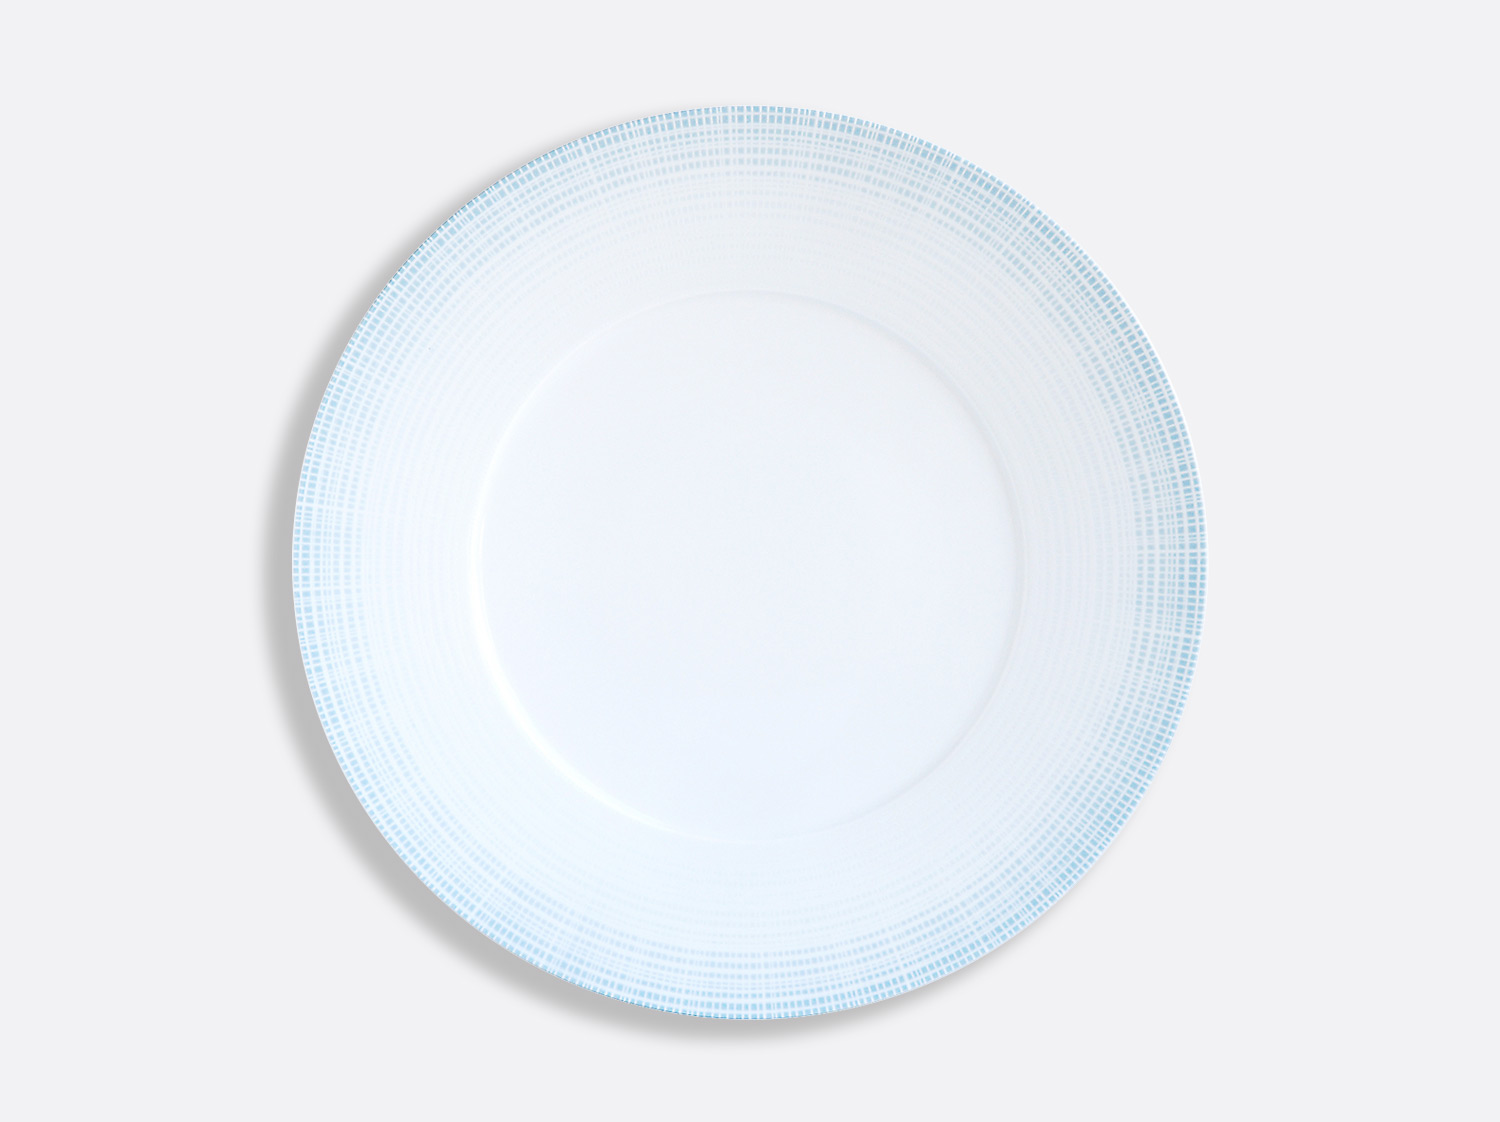 China Plate 29.5 cm of the collection Saphir Bleu | Bernardaud